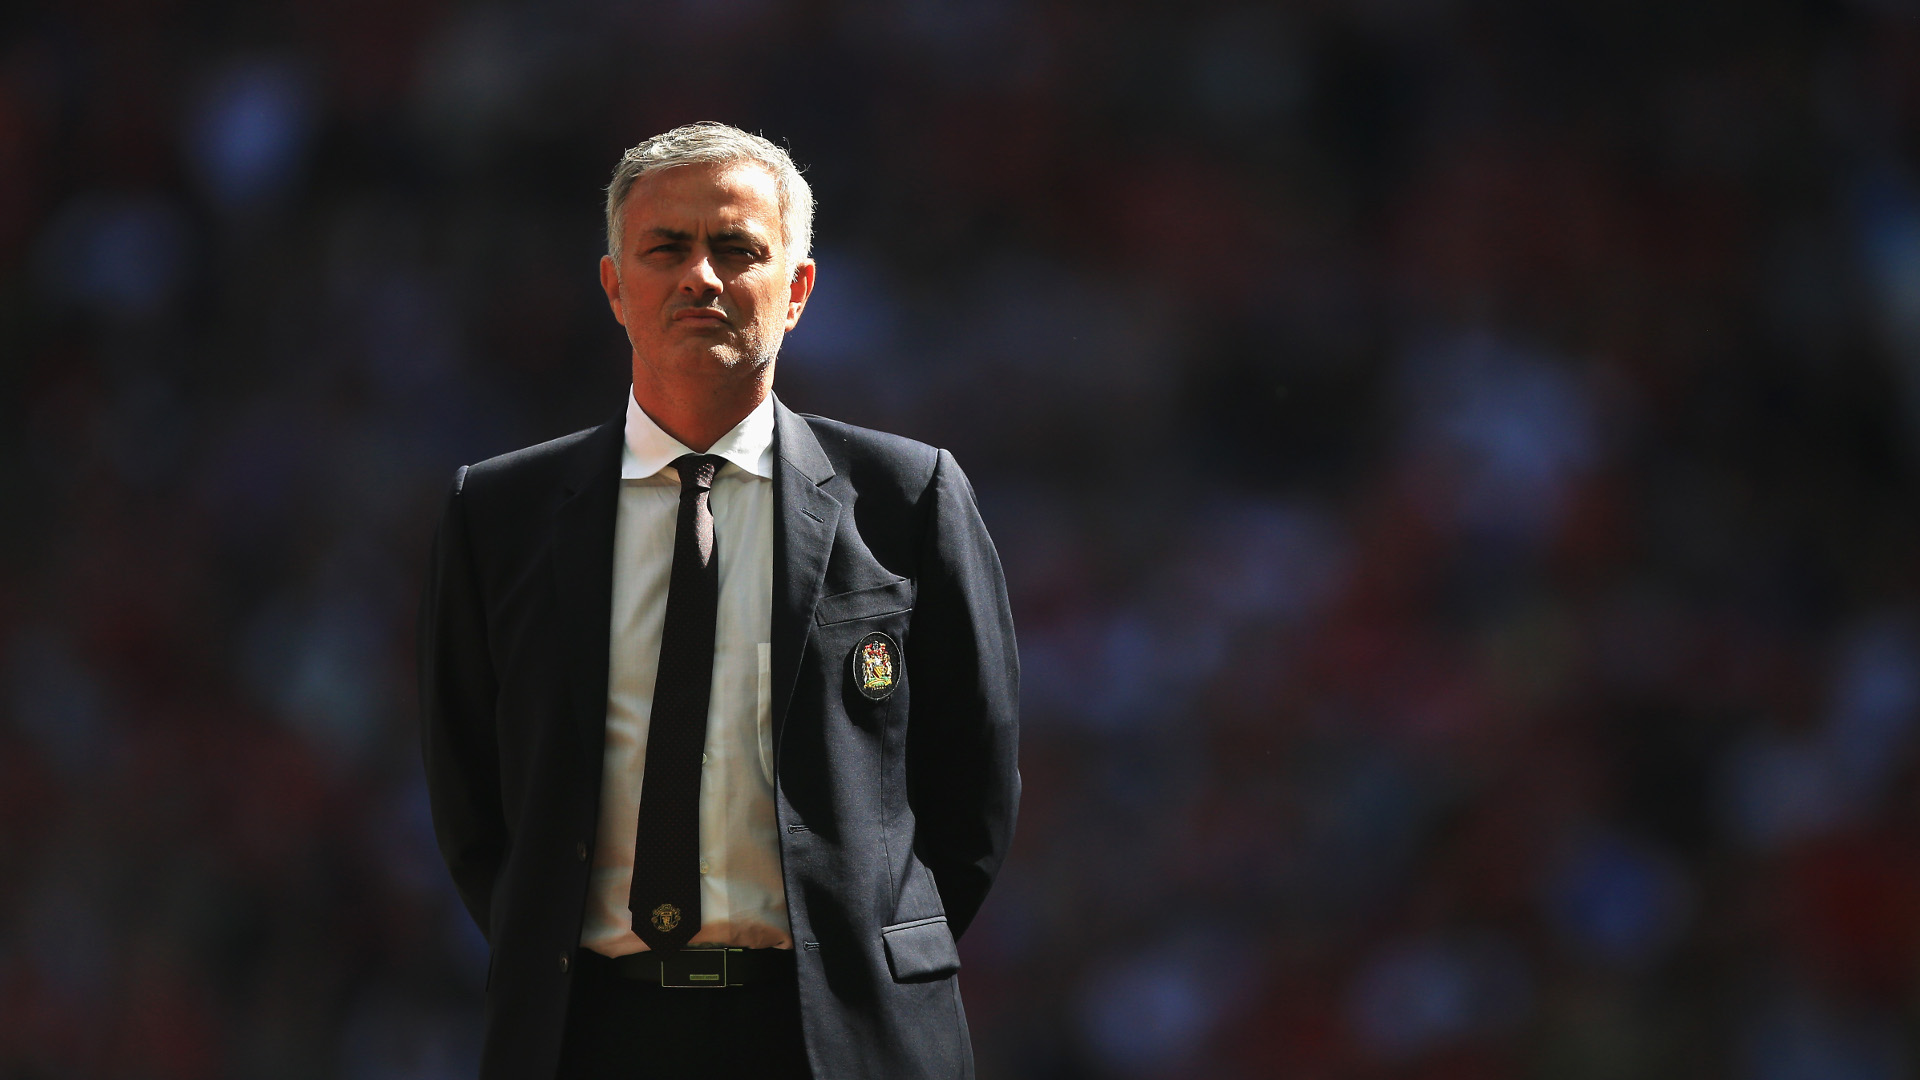 José-Mourinho-watches-on-during-the-Charity-Shield-season-opener-vs-Leicester-City-1920x1080-De-wallpaper-wpc5806500